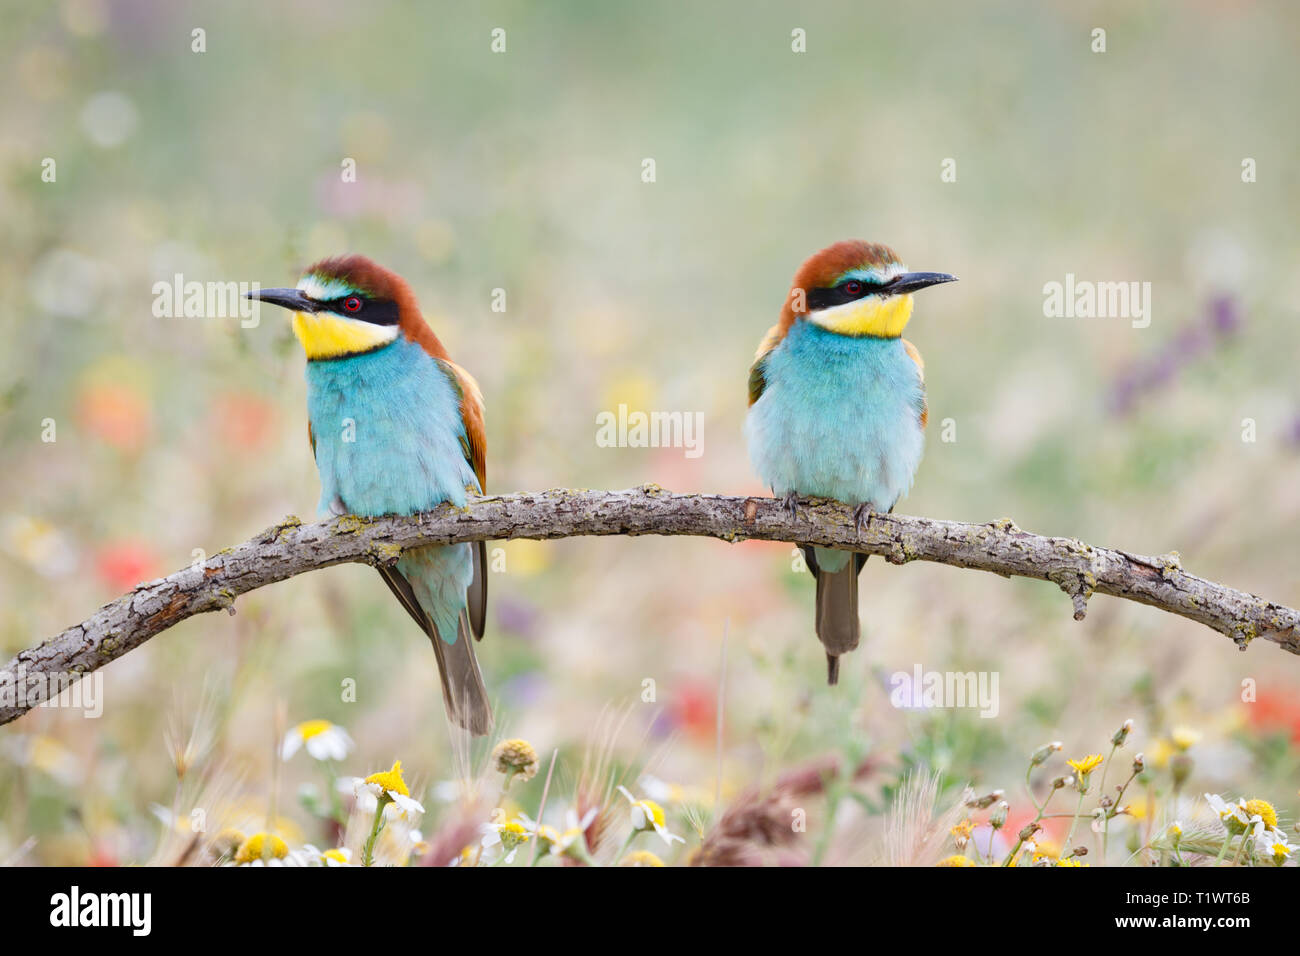 European Bee-eater (Merops apiaster), pair, perched on branch, Lleida Steppes, Catalonia, Spain Stock Photo